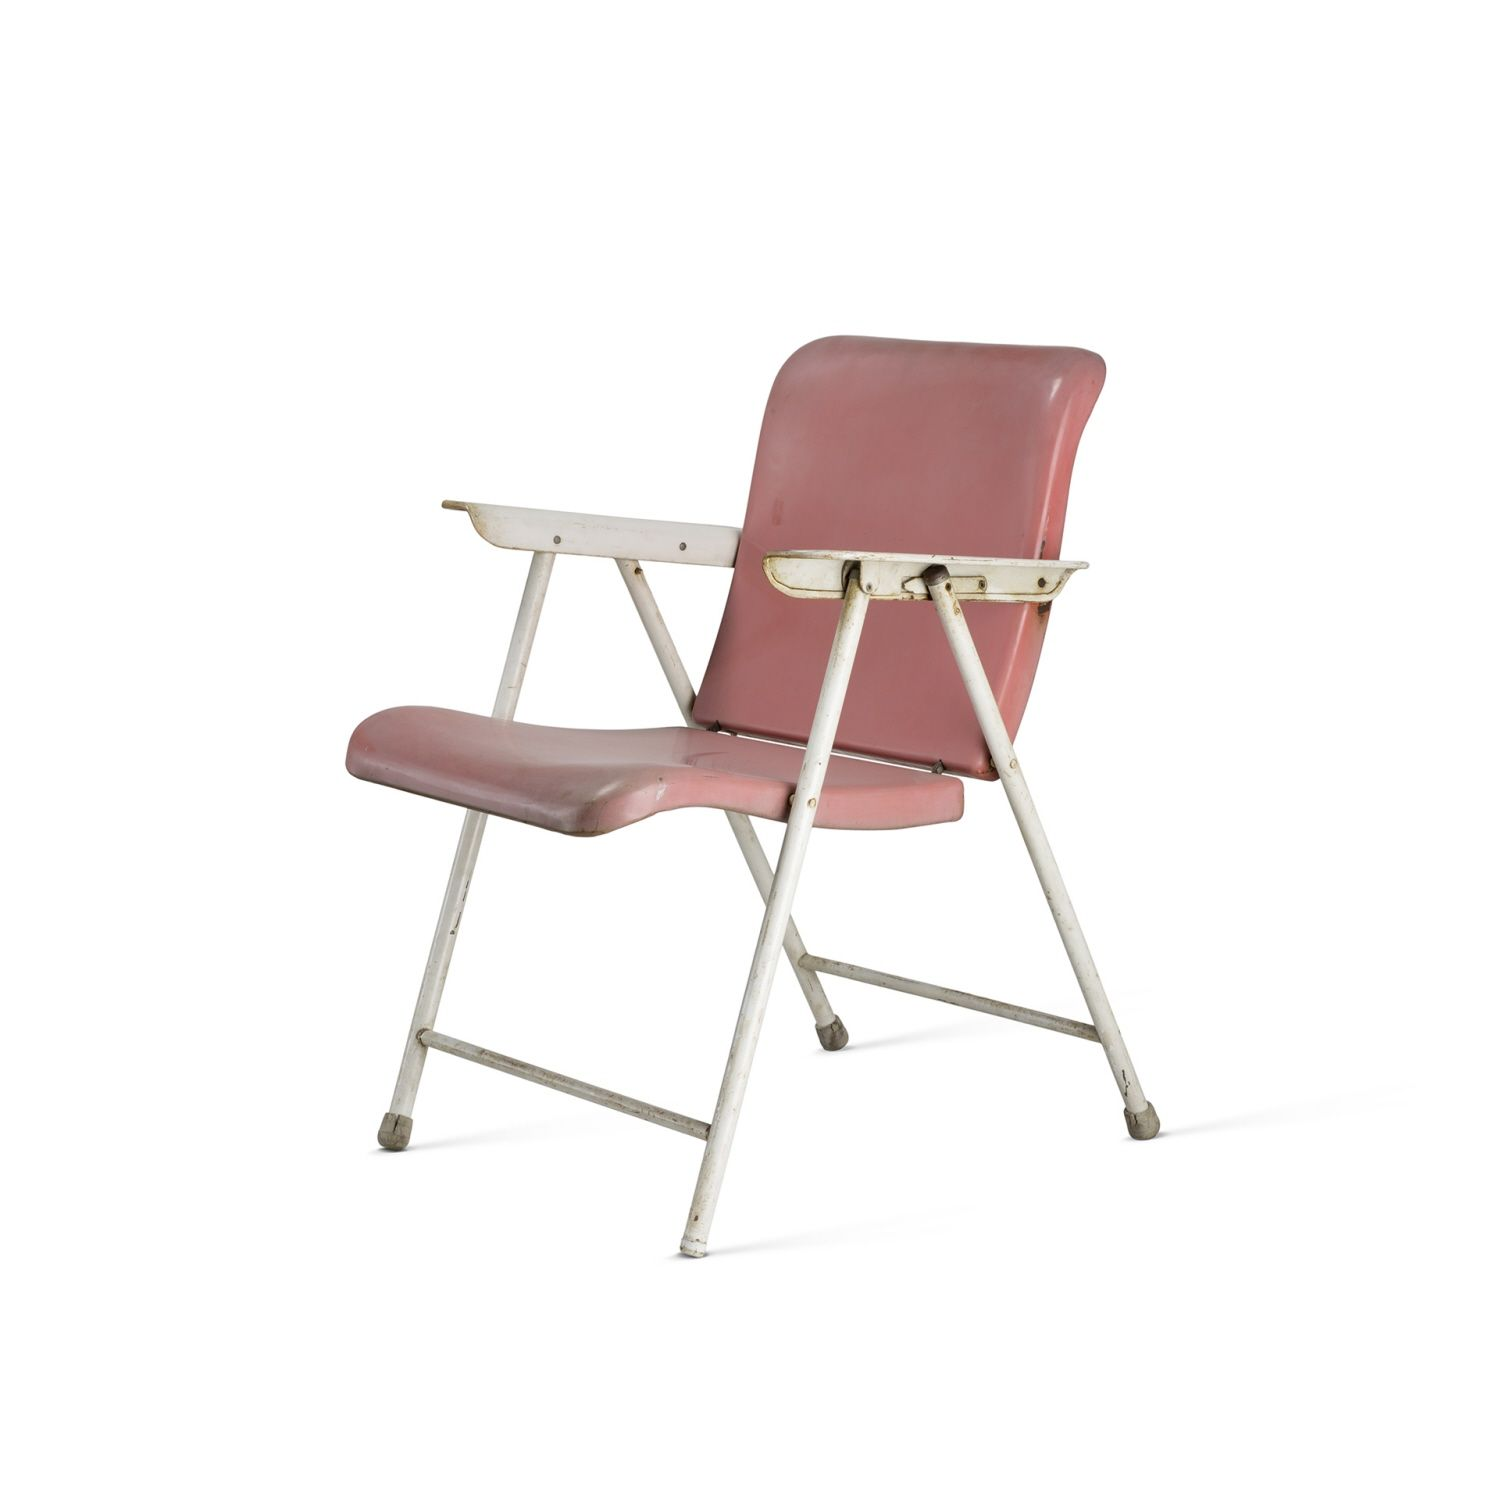 JH512 Folding Chair 1949 Hans J Wegner Vitra Design Museum Collection Folding chairs Pinterest